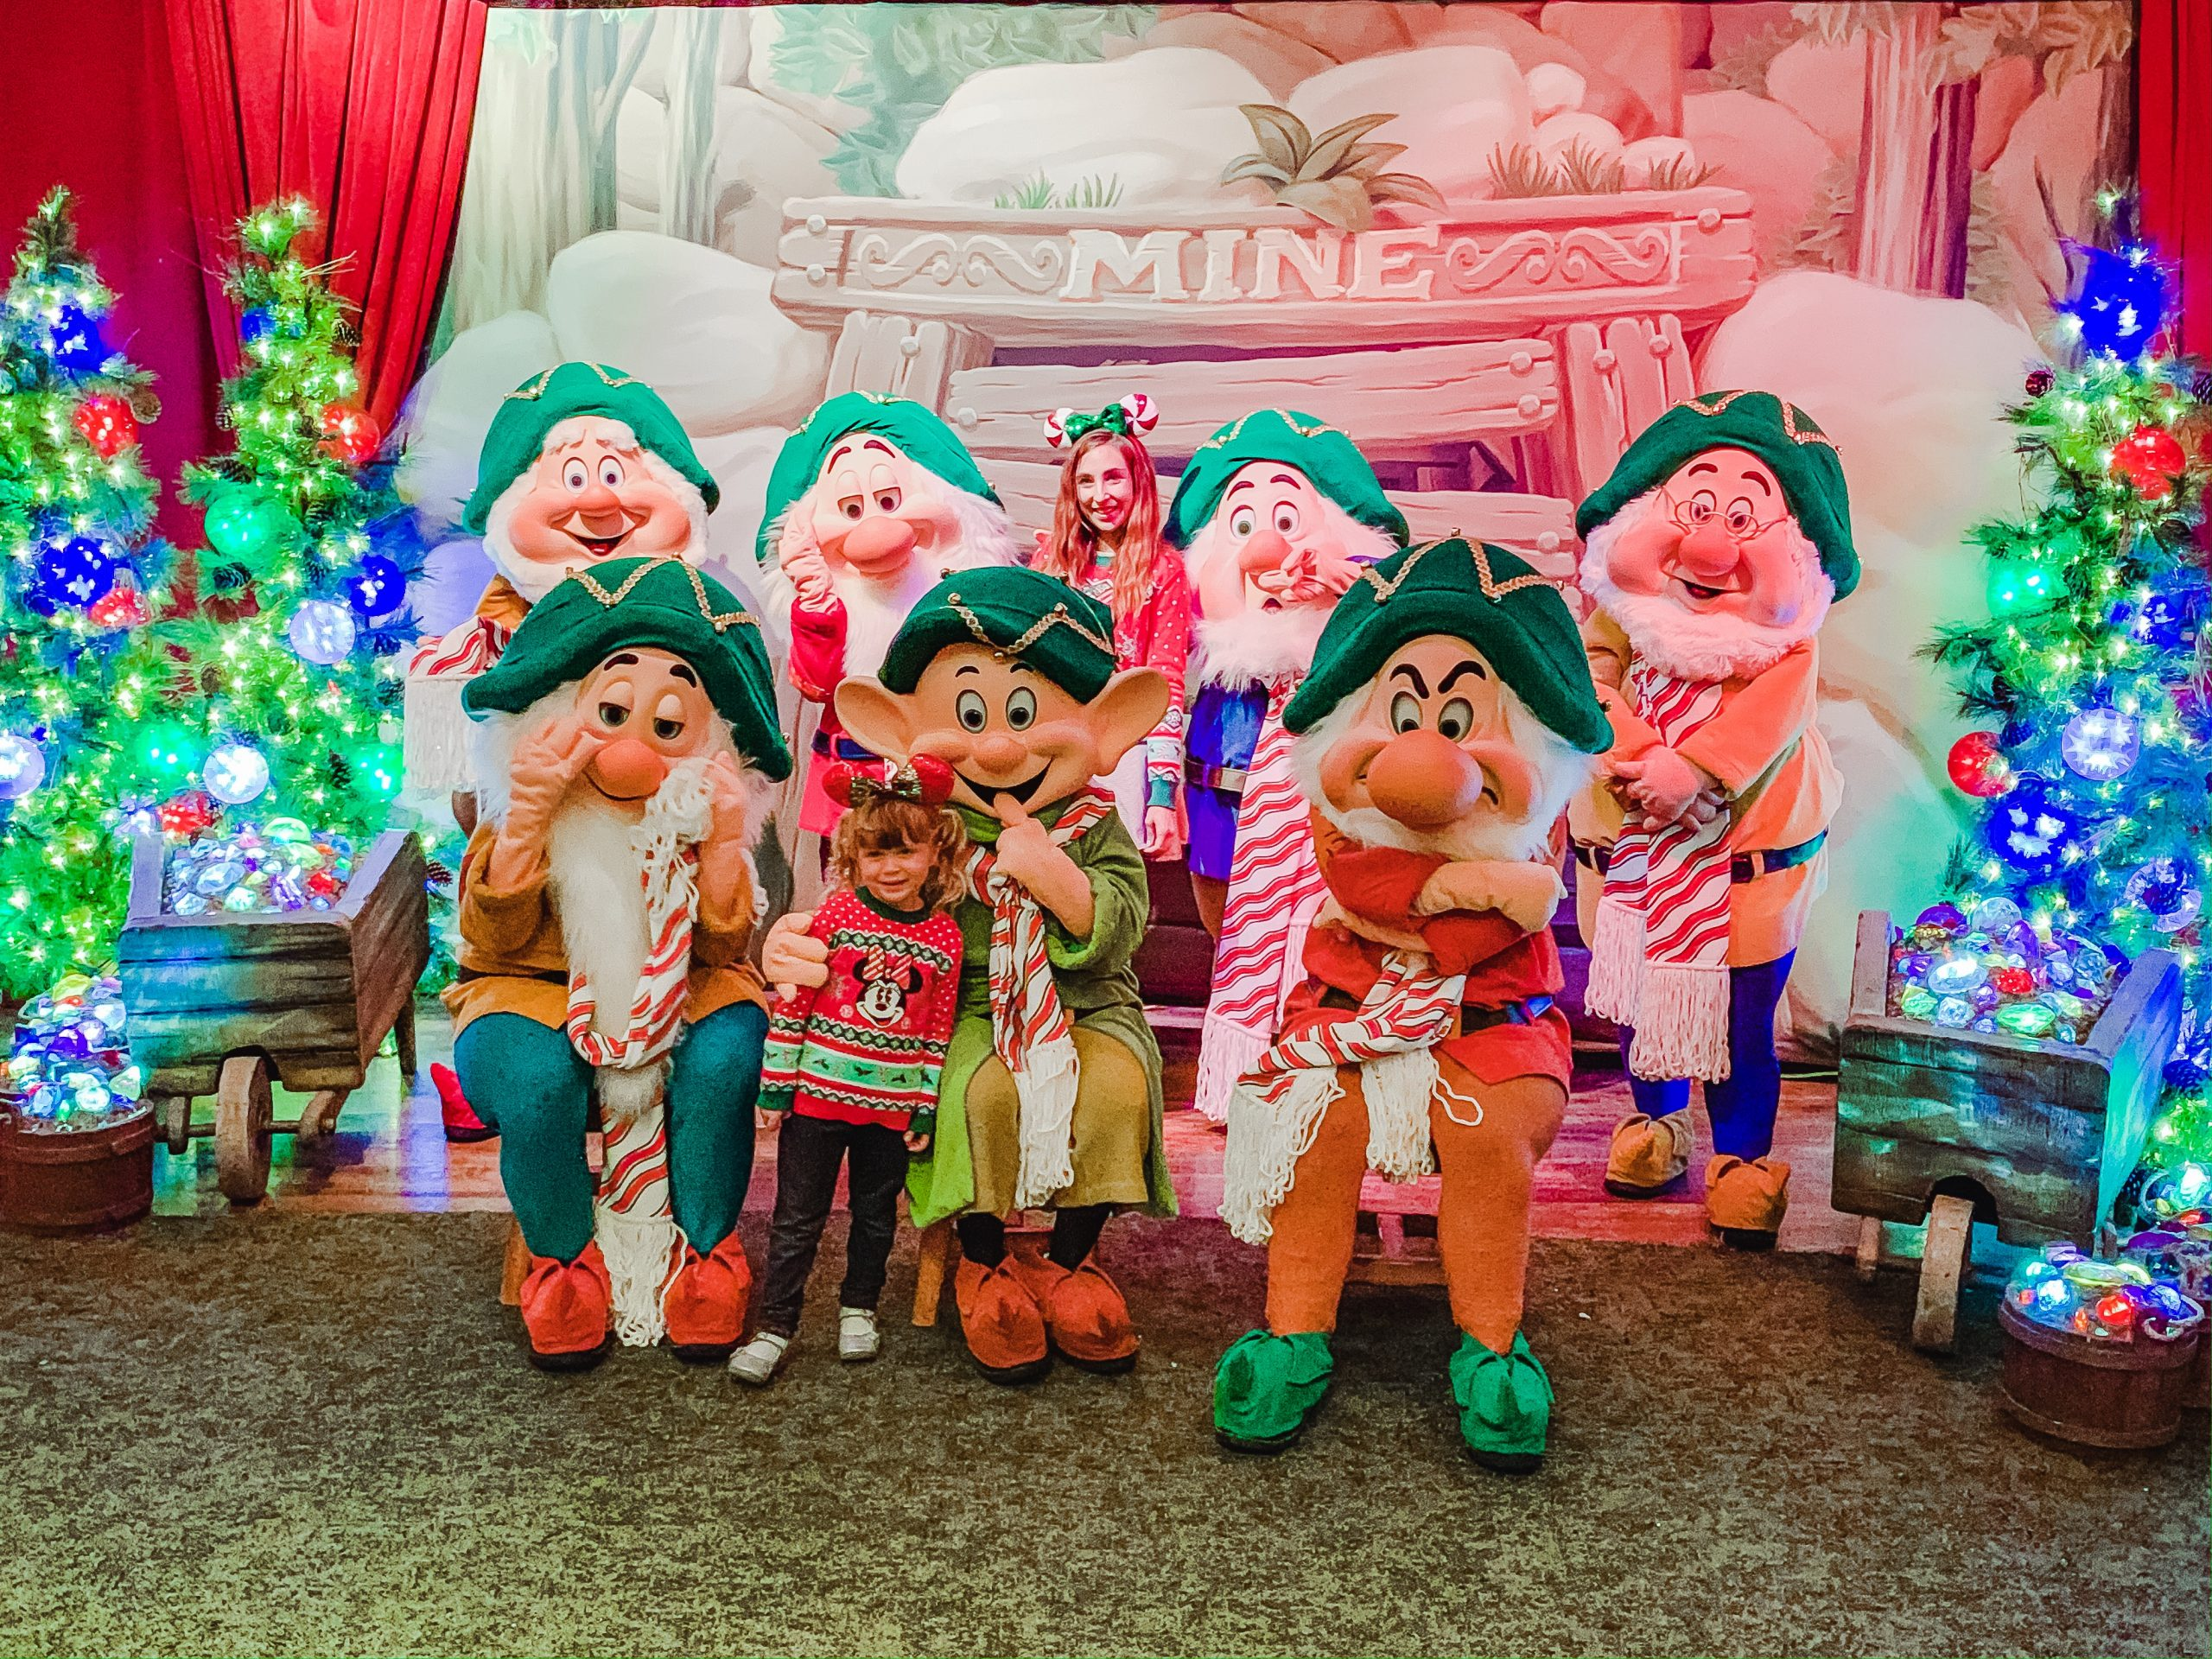 Mickeys Very Christmas Party 2020 Everything You Need to Know About Mickey's Very Merry Christmas Party